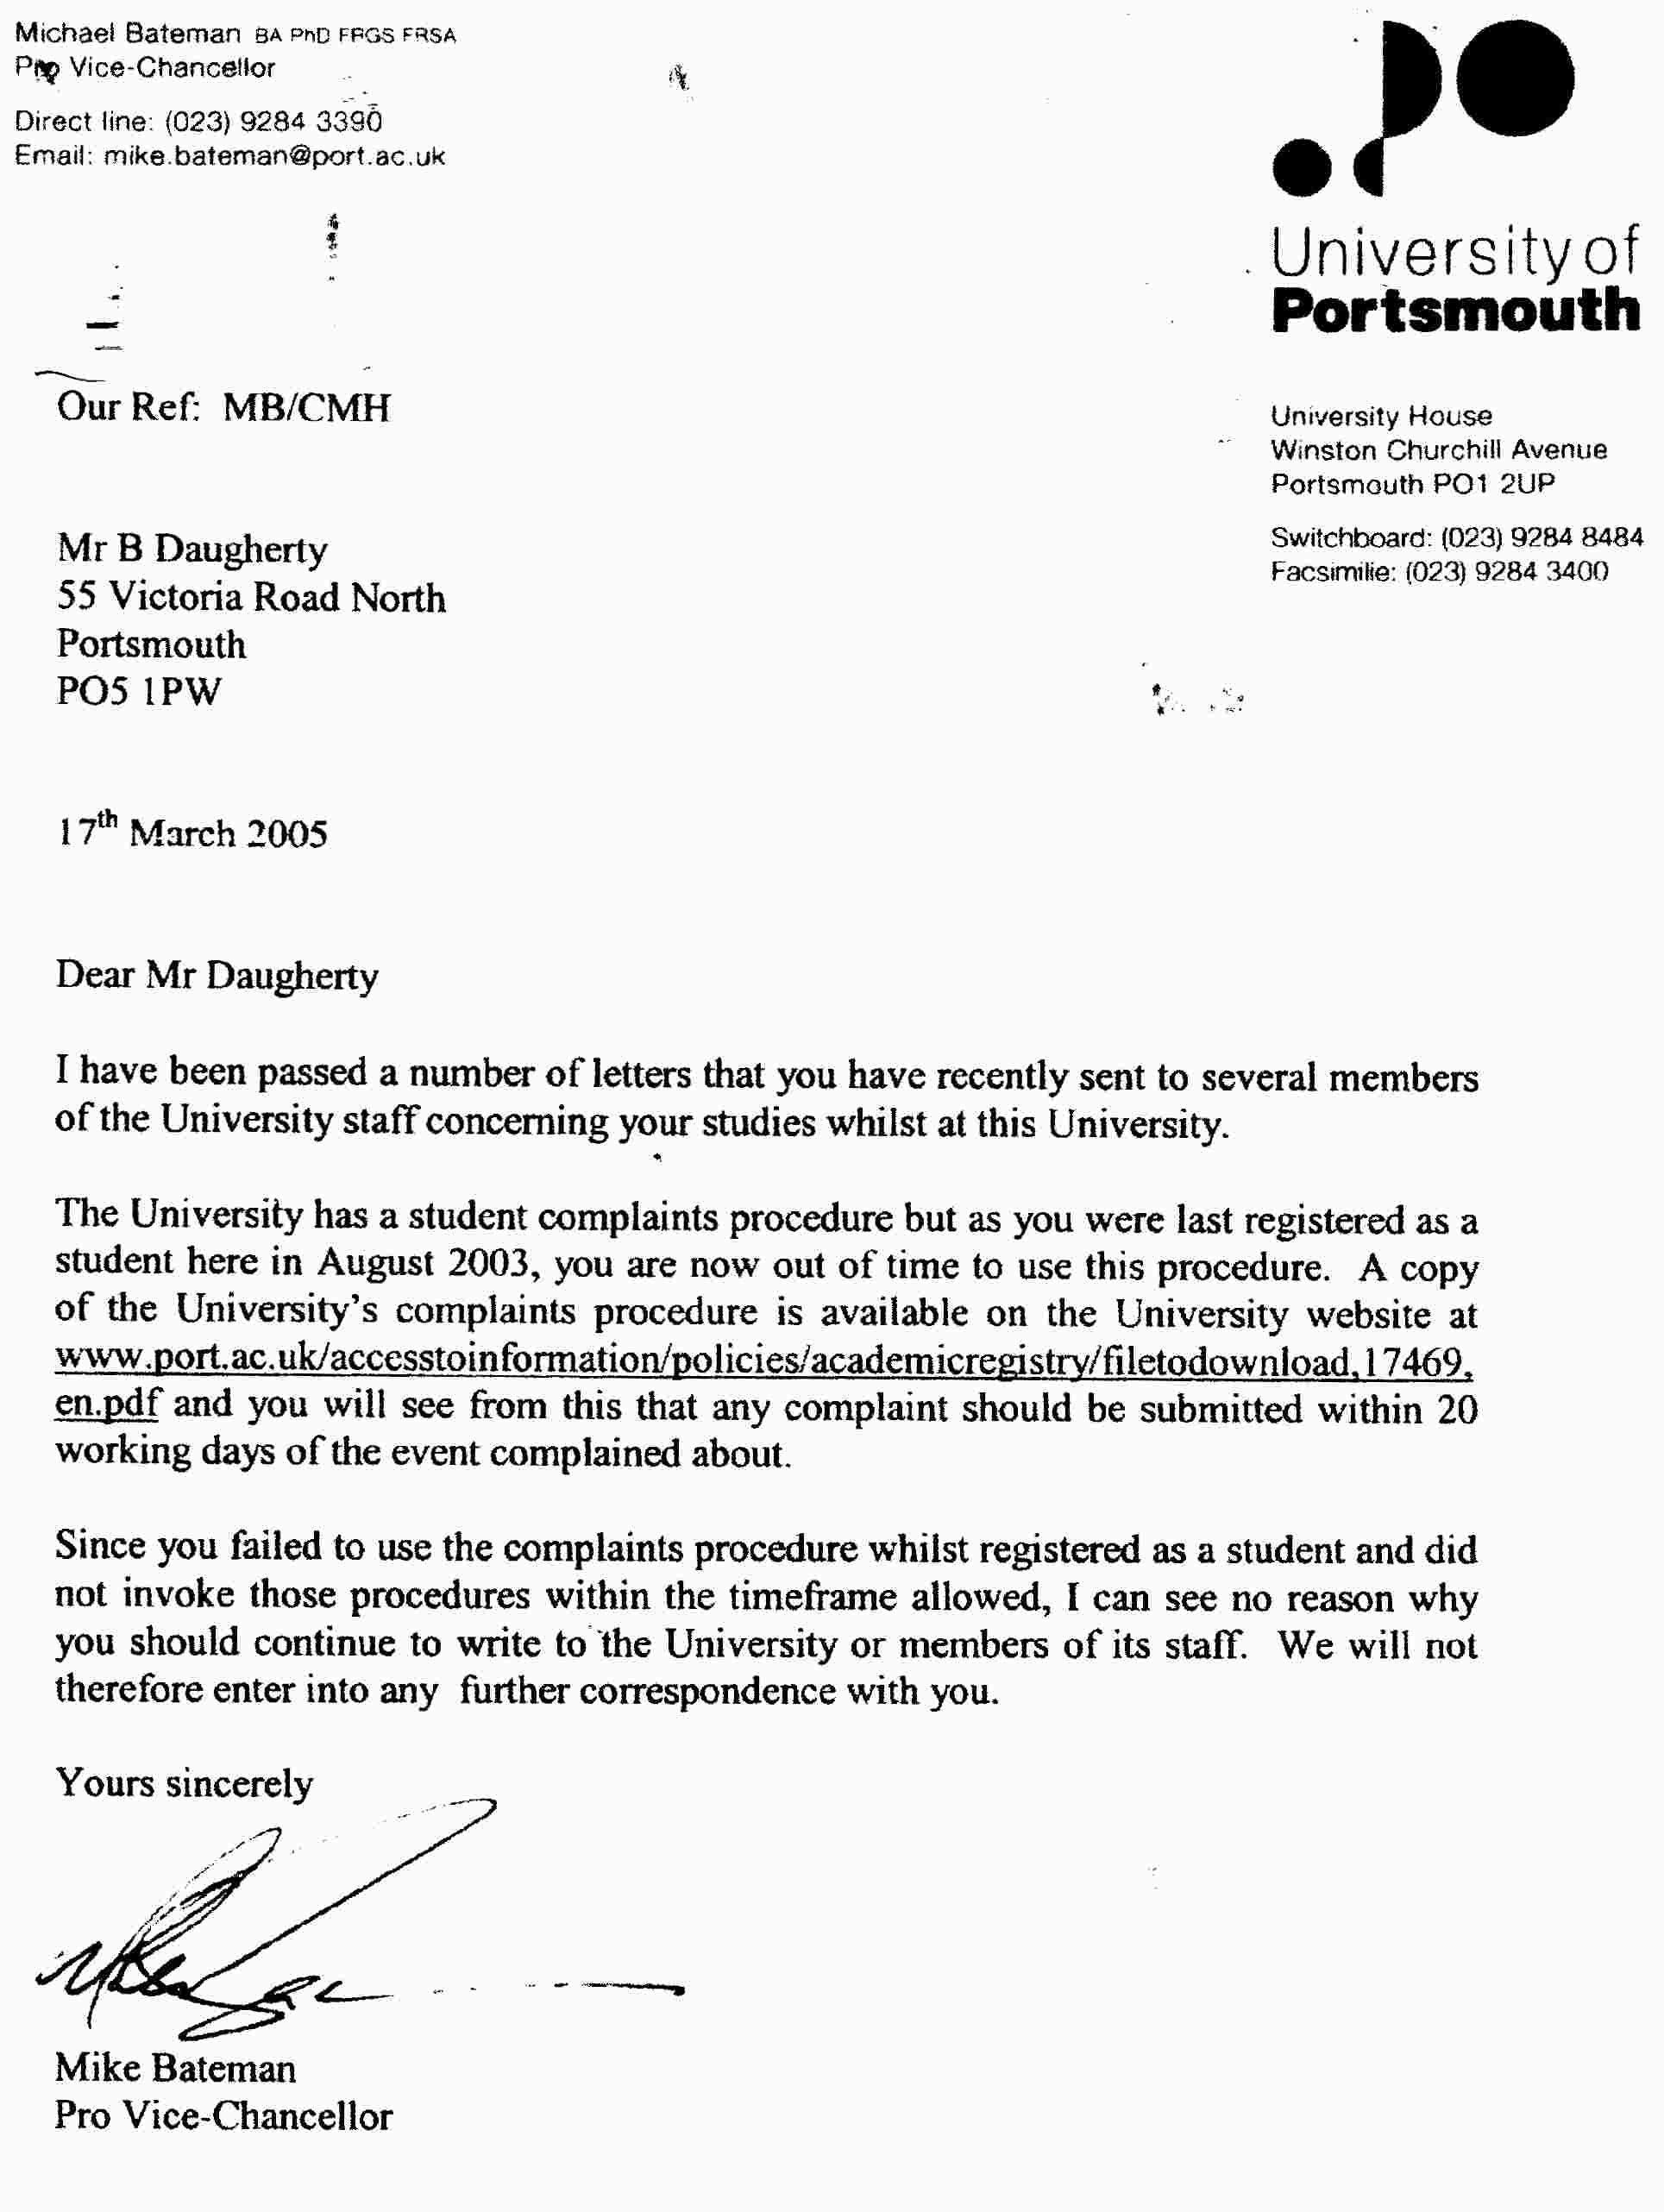 Mathematics portsmouth university attempting get refund letter mathematics portsmouth university attempting get refund letter claim for injury sample spiritdancerdesigns